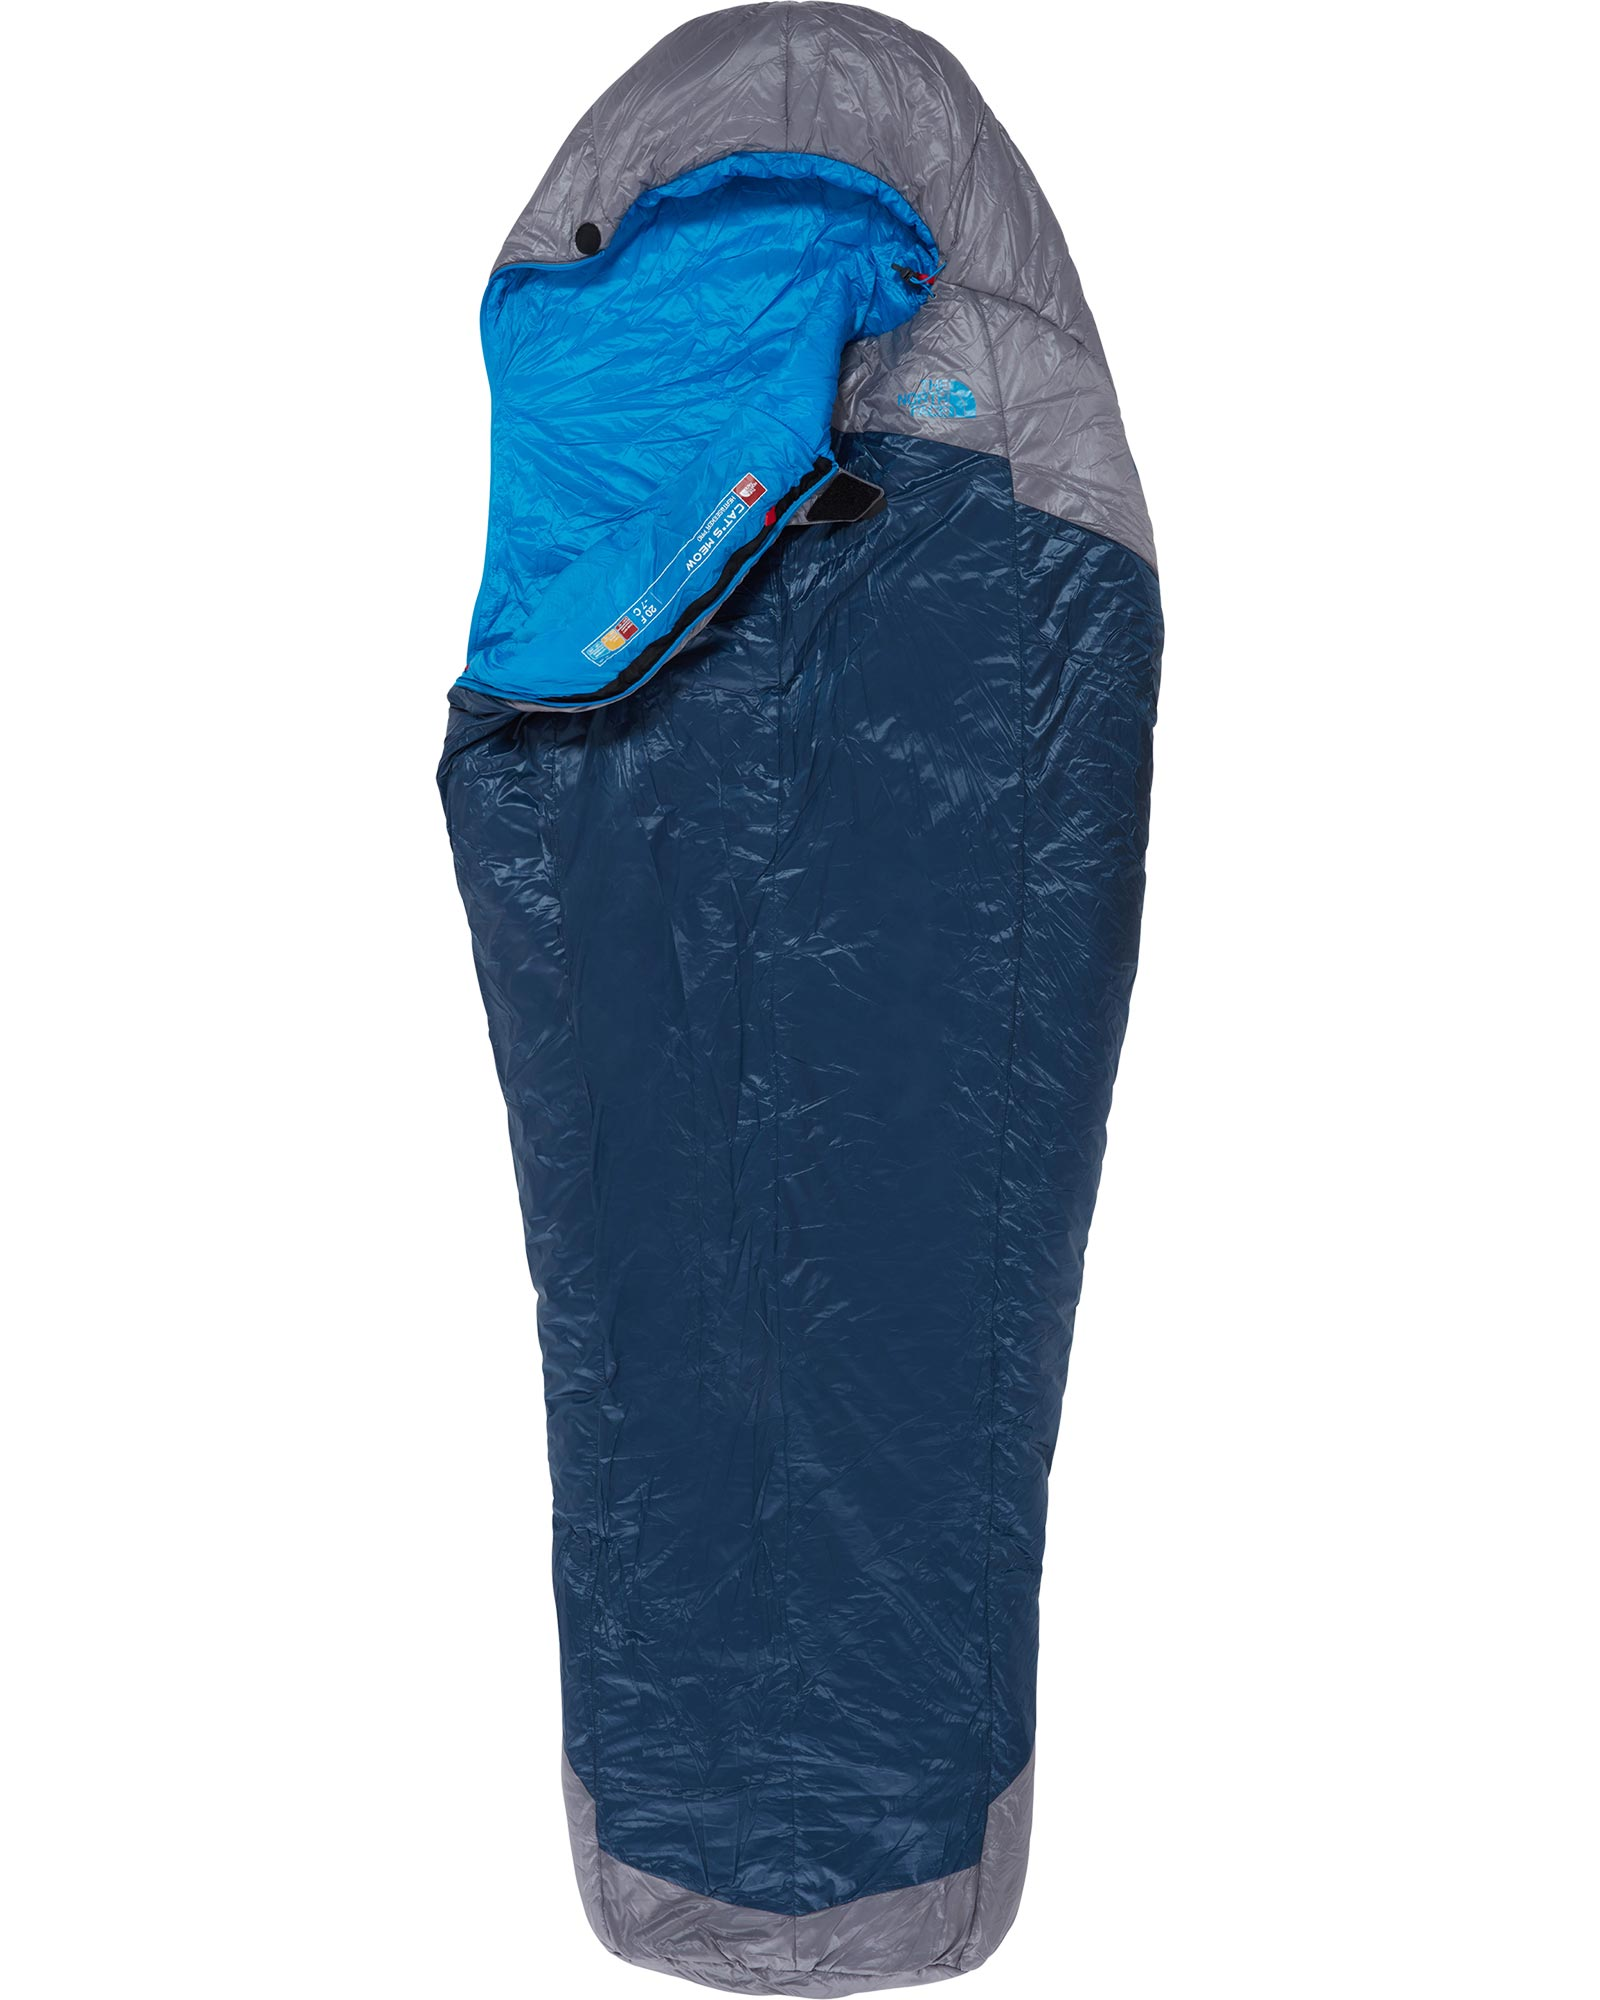 The North Face Cat's Meow Long Sleeping Bag 0